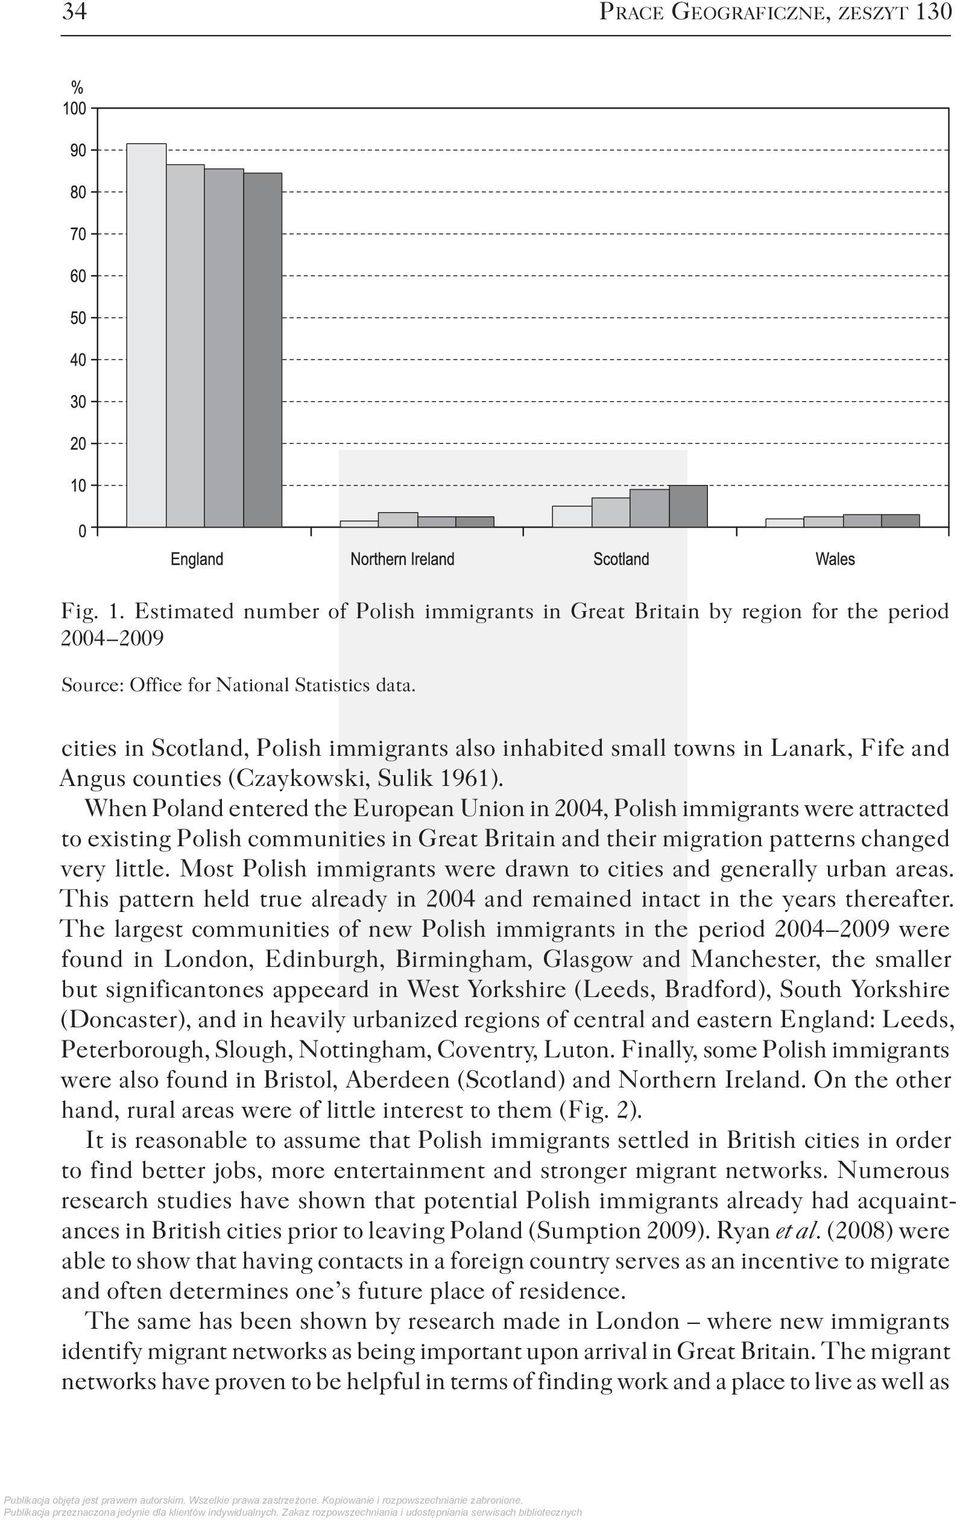 When Poland entered the European Union in 2004, Polish immigrants were attracted to existing Polish communities in Great Britain and their migration patterns changed very little.